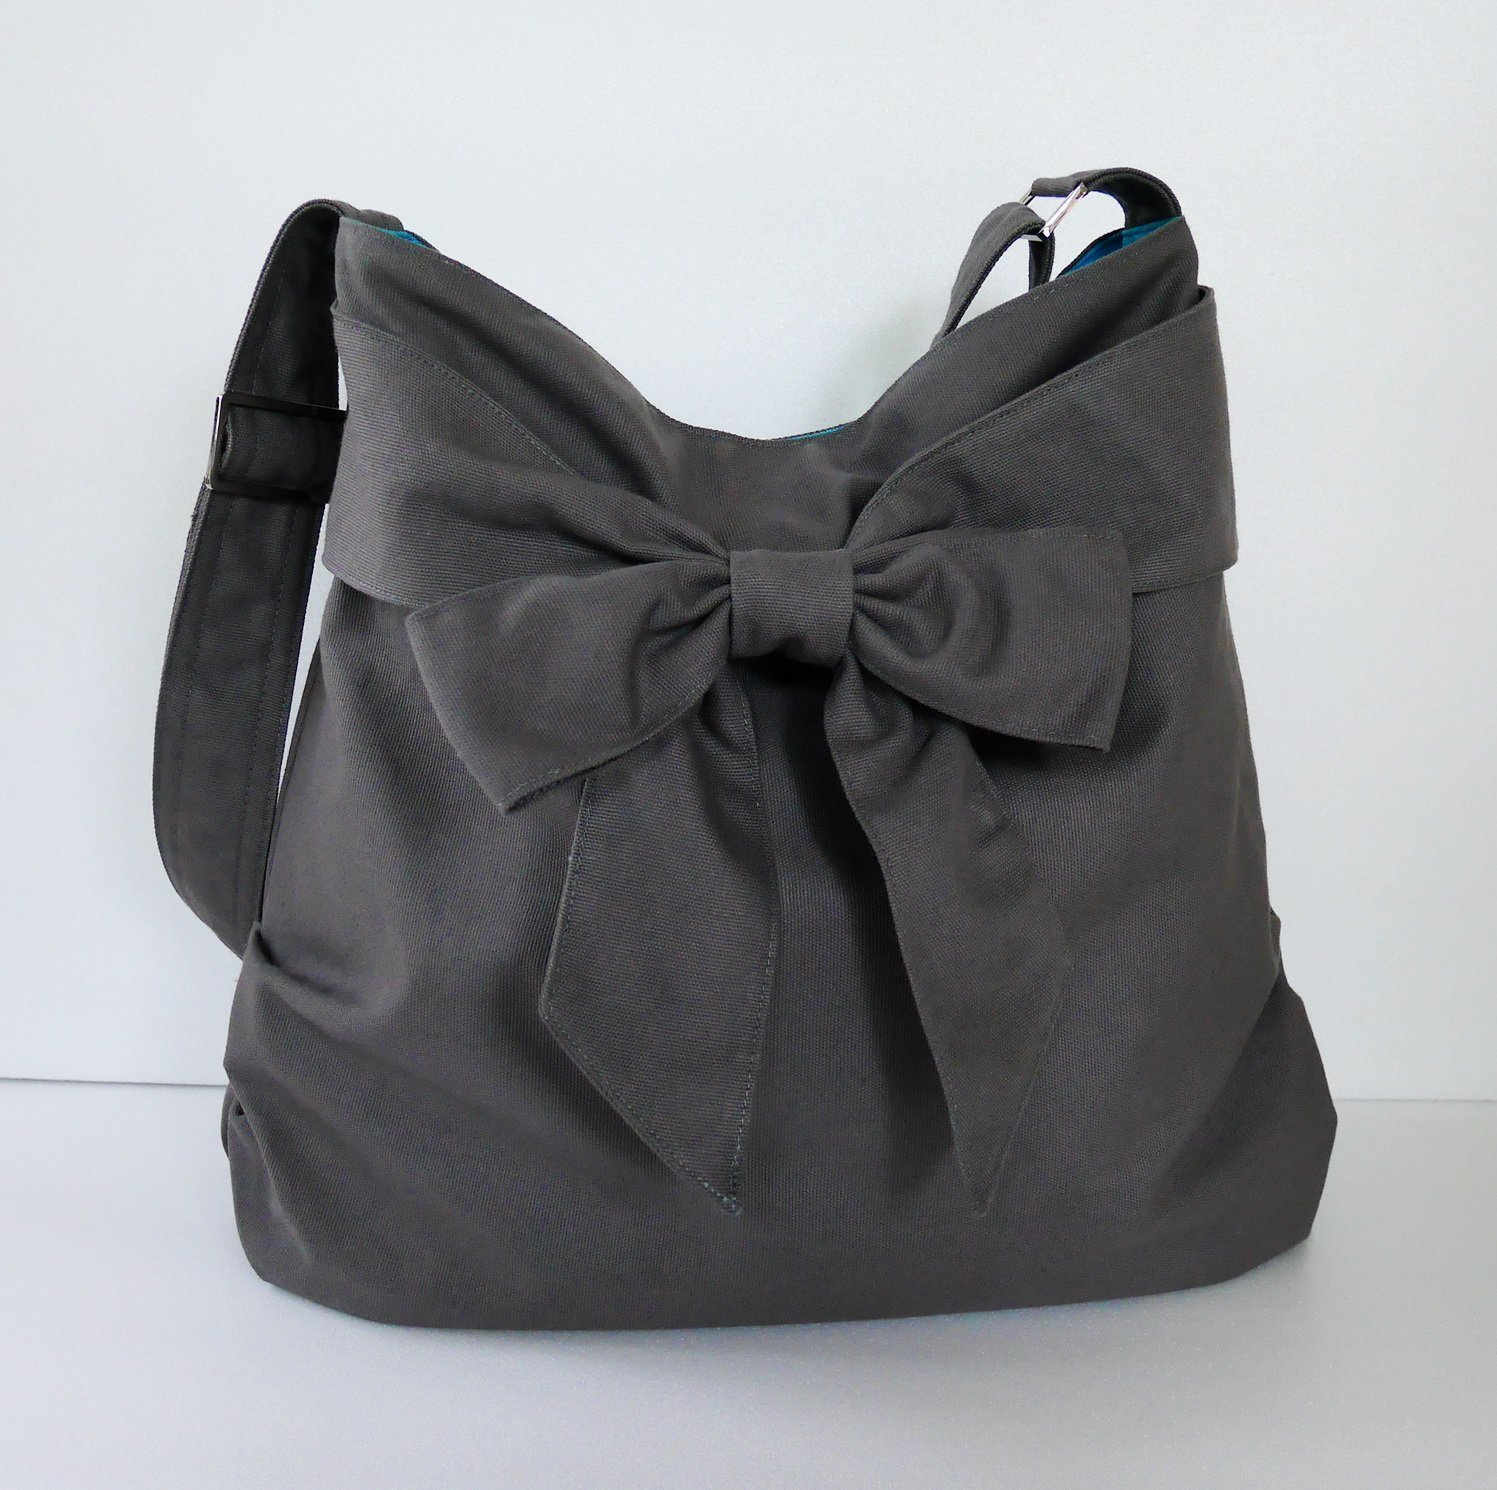 Virine grey shoulder bag, cross body bag, messenger bag, everyday bag, handbag, travel bag, tote, bow, women - JENNIFER